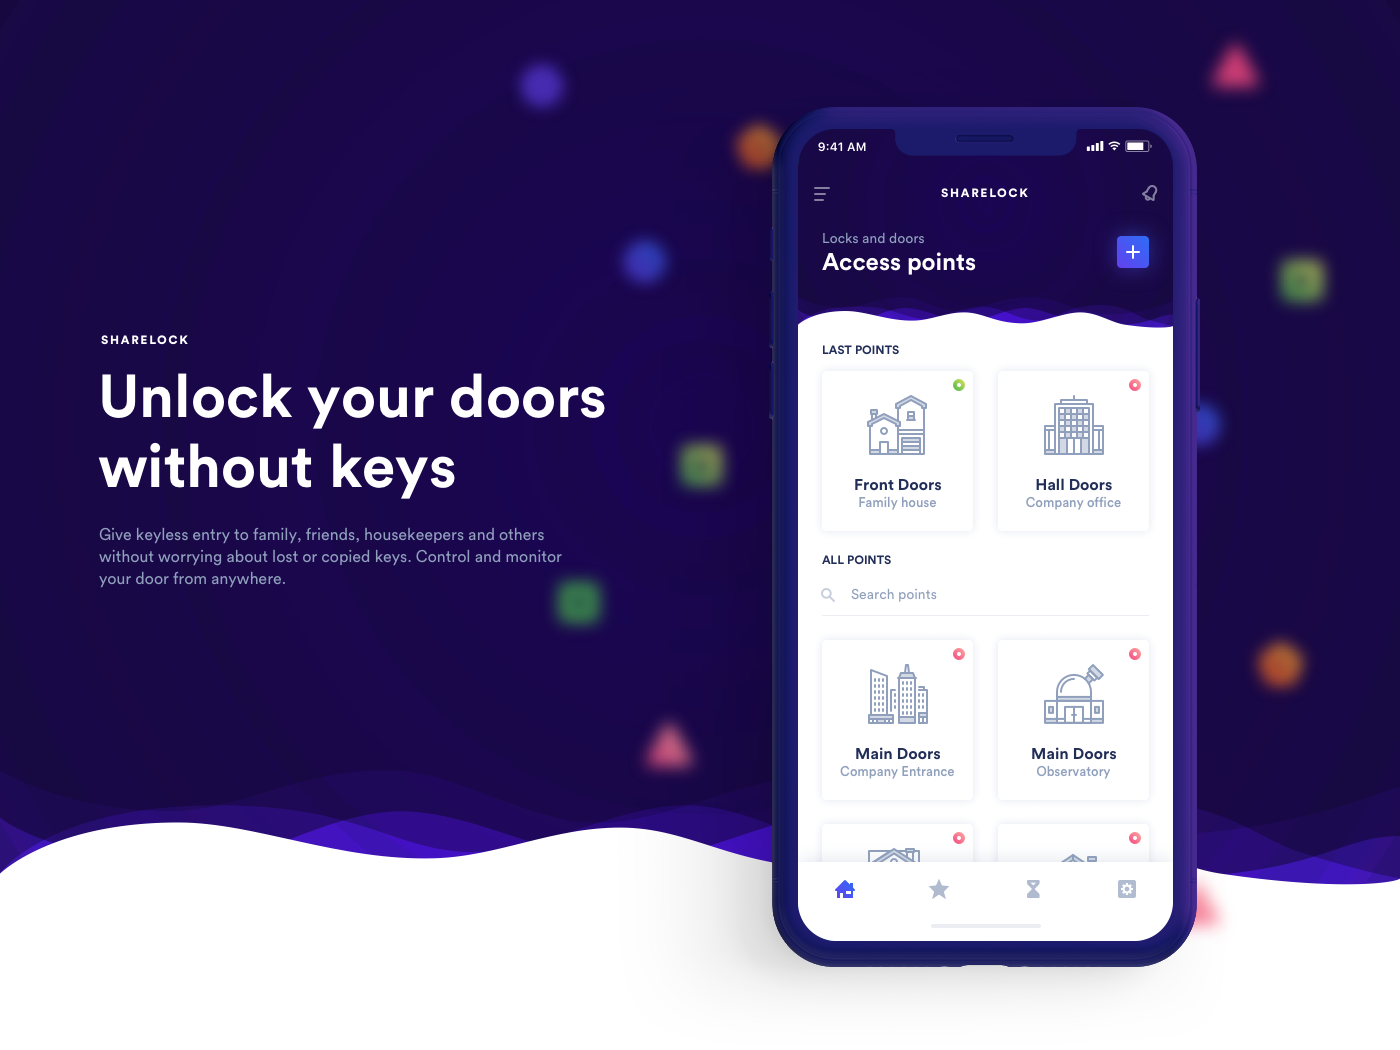 THANK YOU FOR CHECKING US OUT & Sharelock - Unlock your doors without keys on Behance